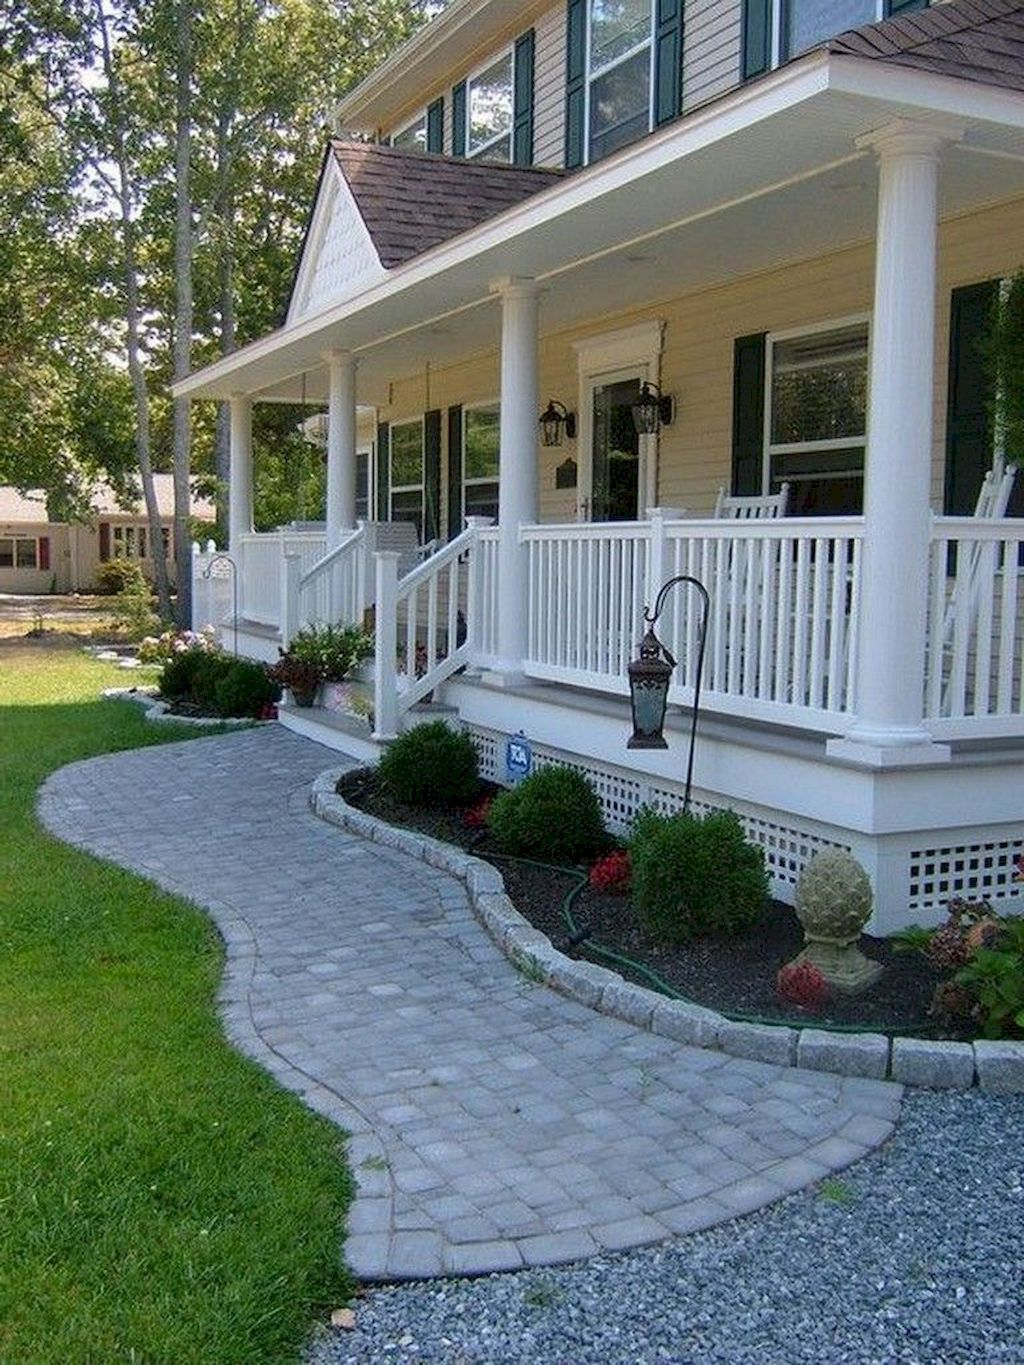 Scraper Problem Losing Data Front Walkway Landscaping Porch Landscaping Front Porch Landscape Landscaping ideas for house with front porch